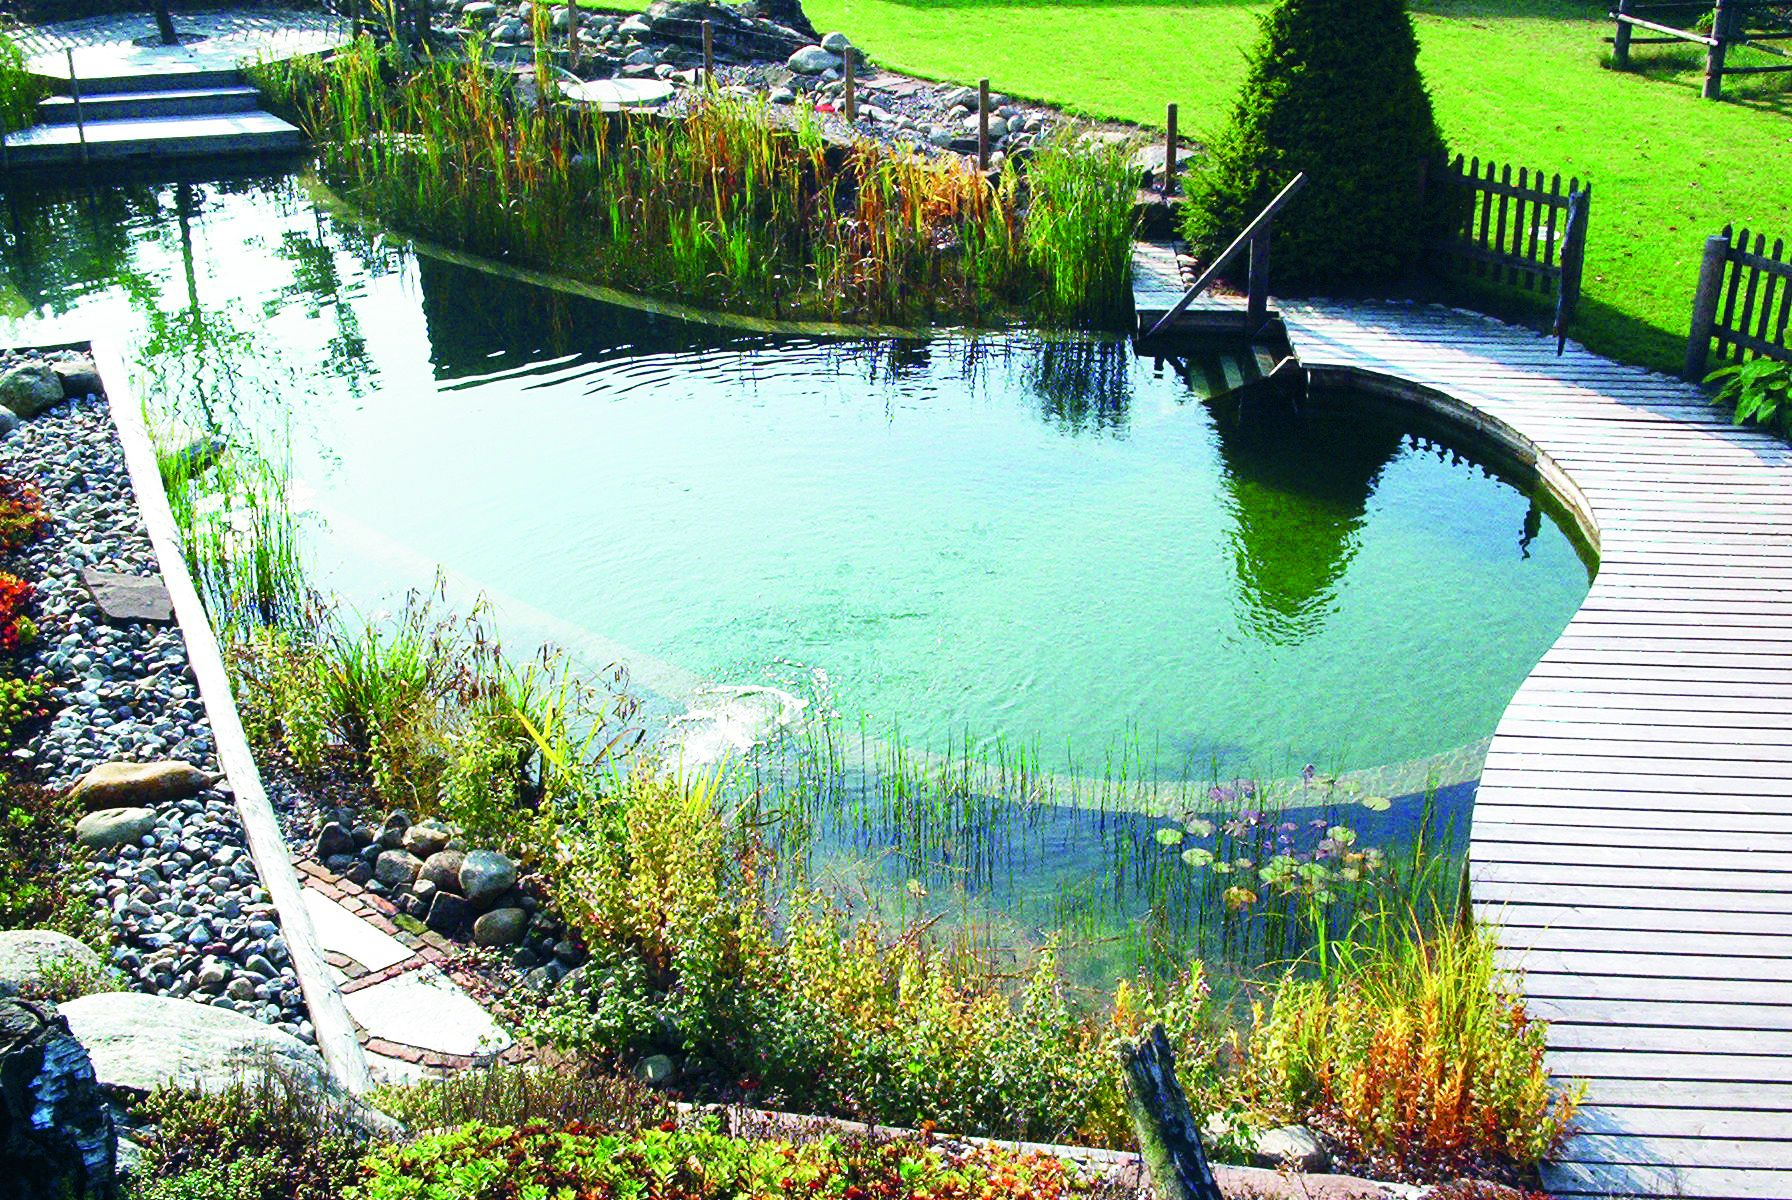 Biotop natural pools garden ponds nature pools for Piscinas ecologicas